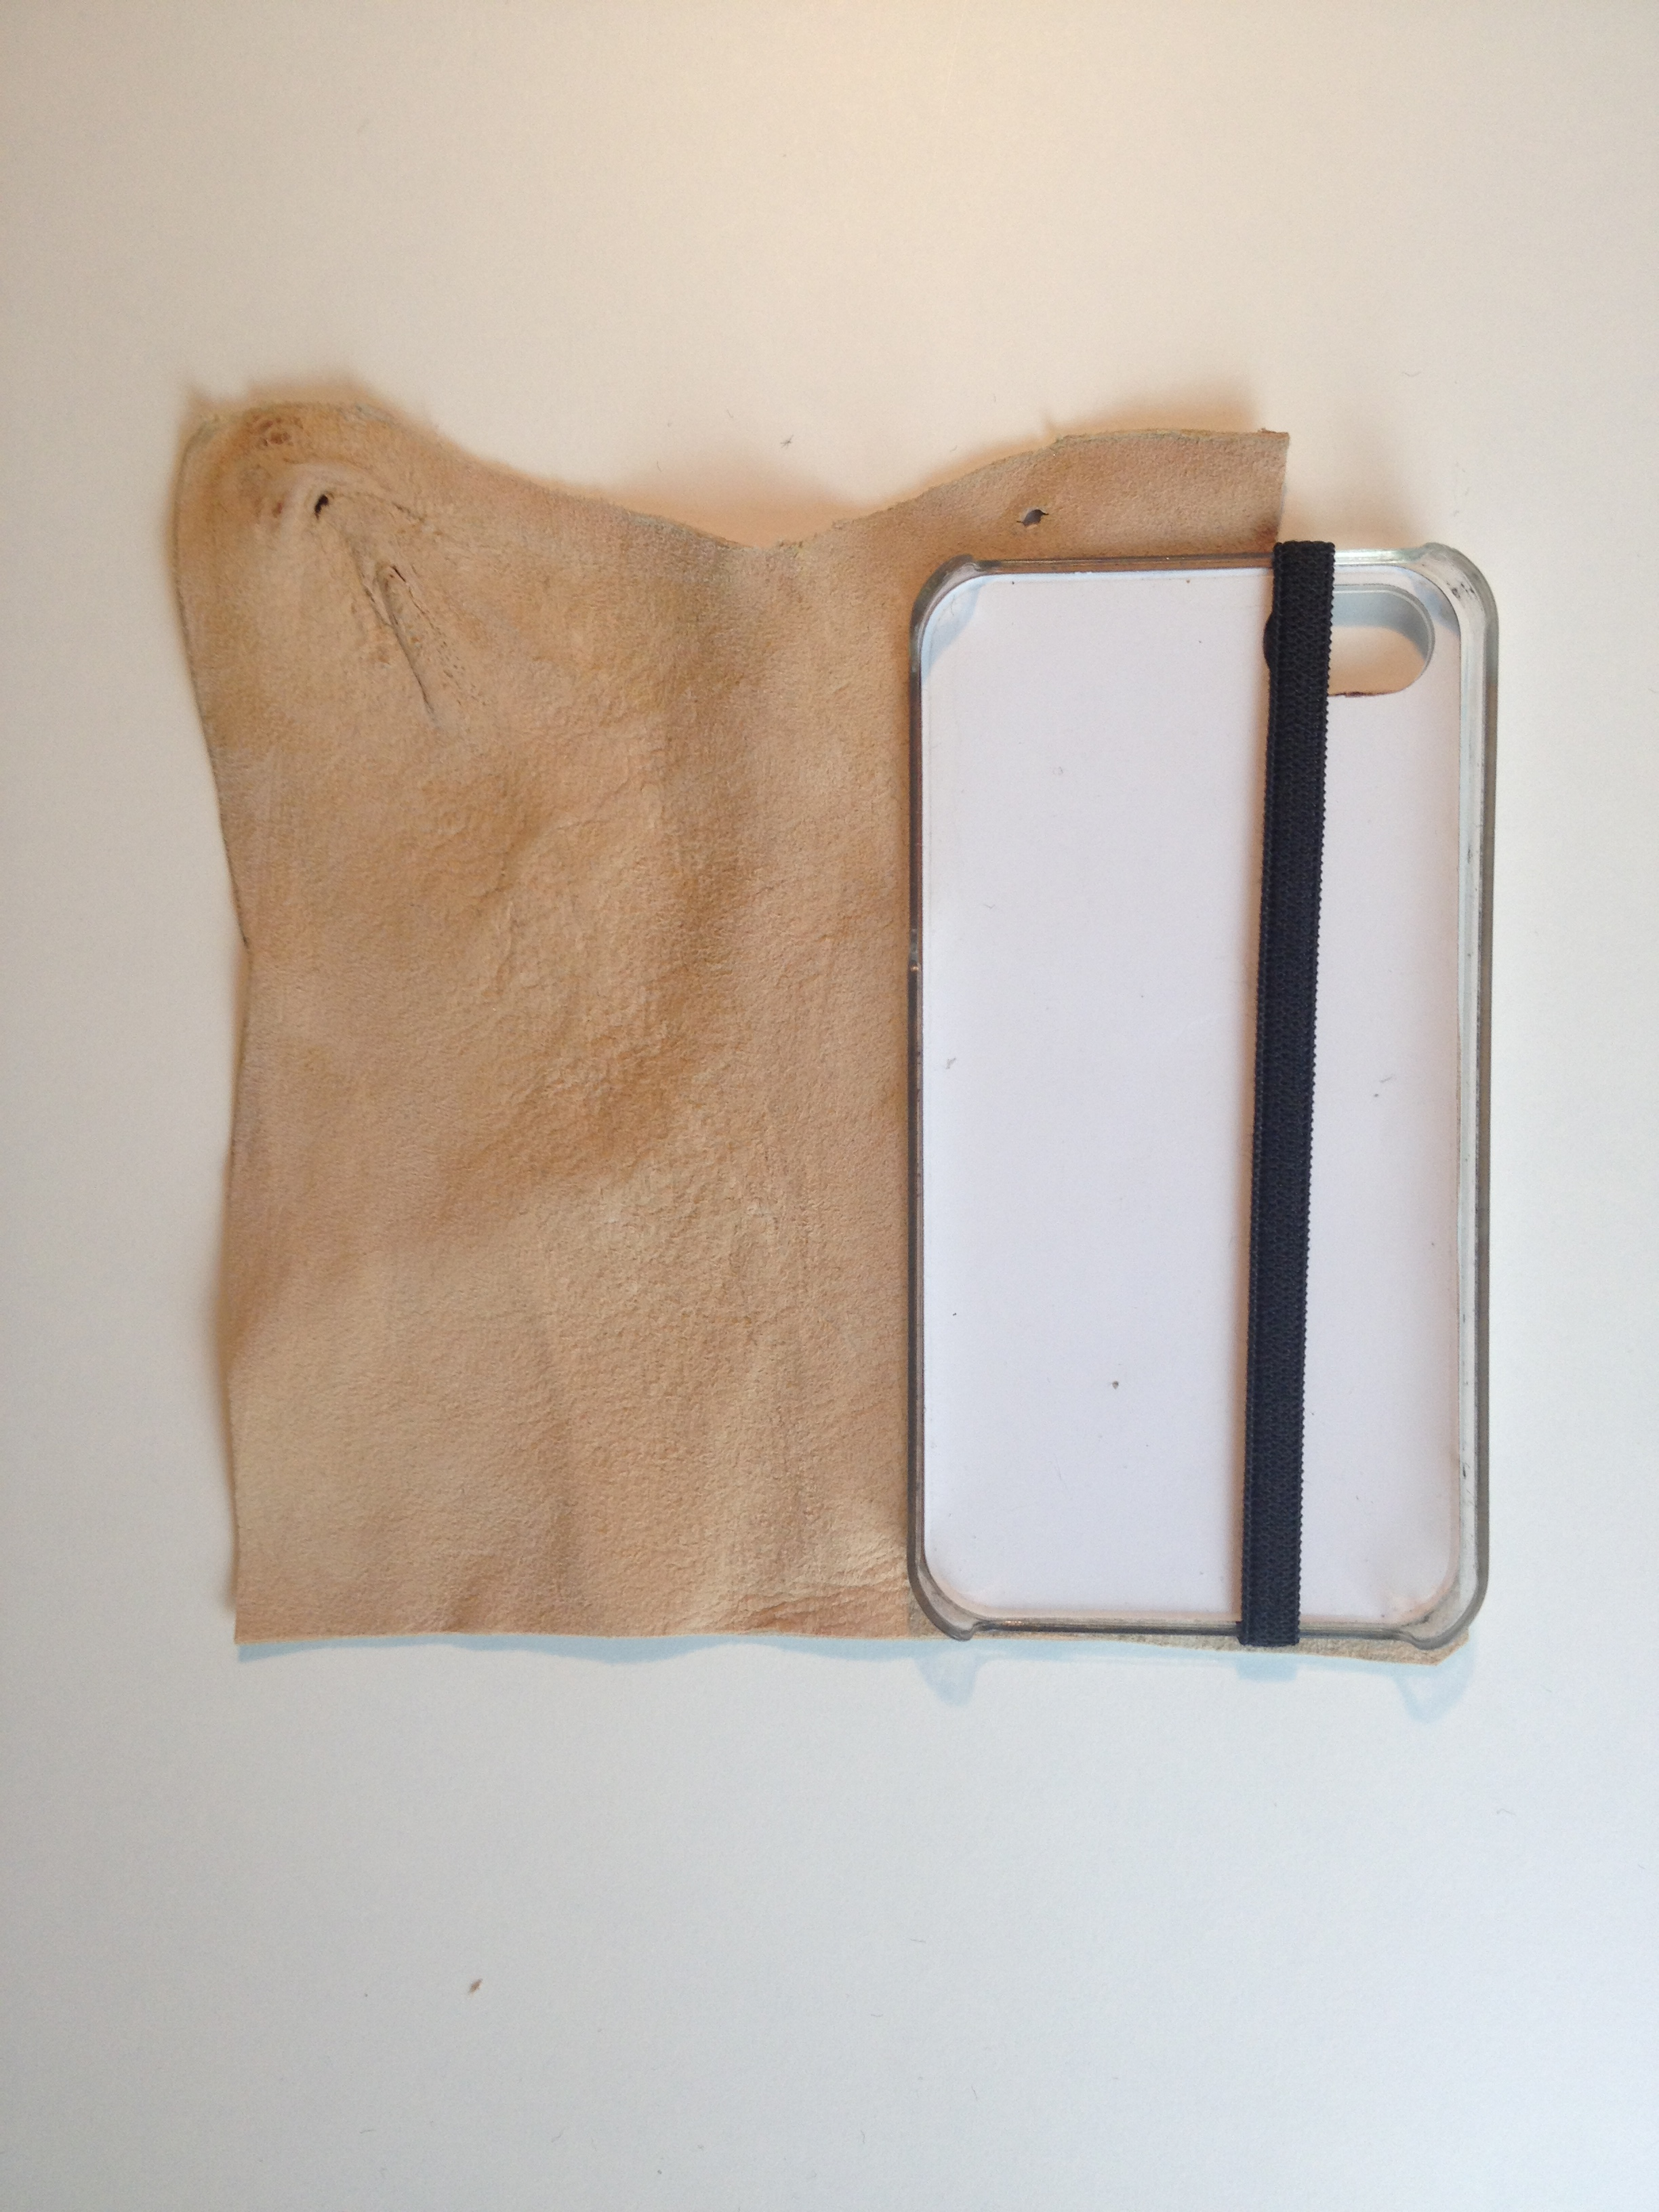 Do It Yourself Naehen Very Easy Diy Mobile Phone Case Wiebke Lara